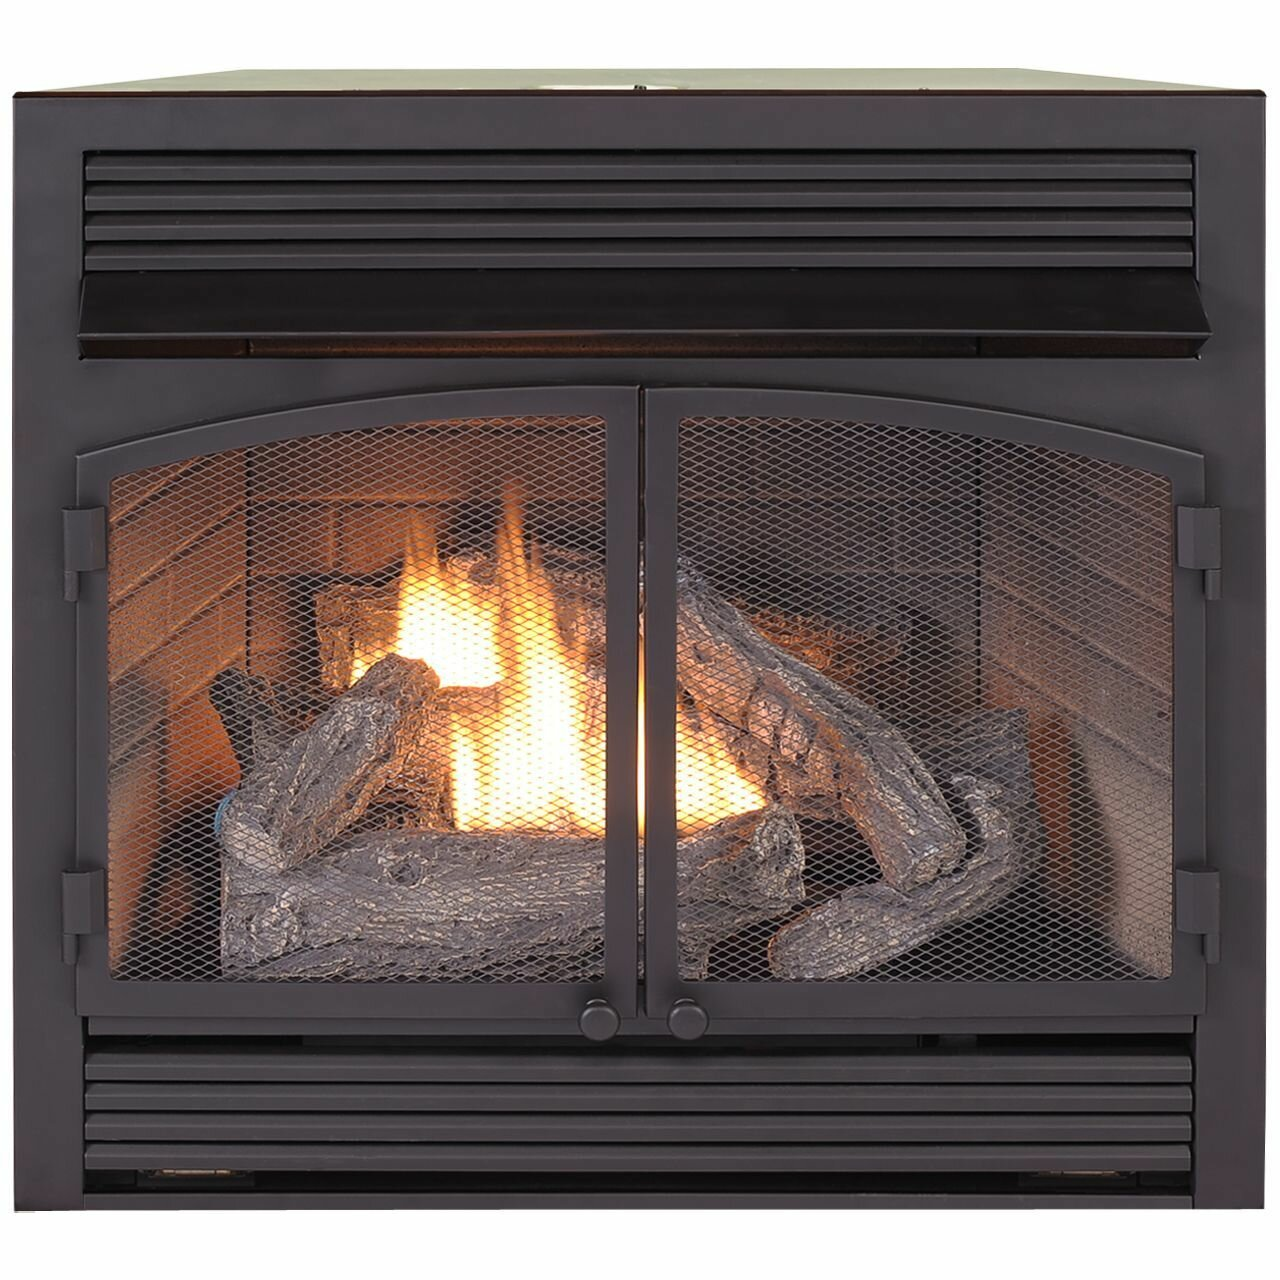 Excellent Vent Free Recessed Natural Gas Propane Fireplace Insert Download Free Architecture Designs Scobabritishbridgeorg